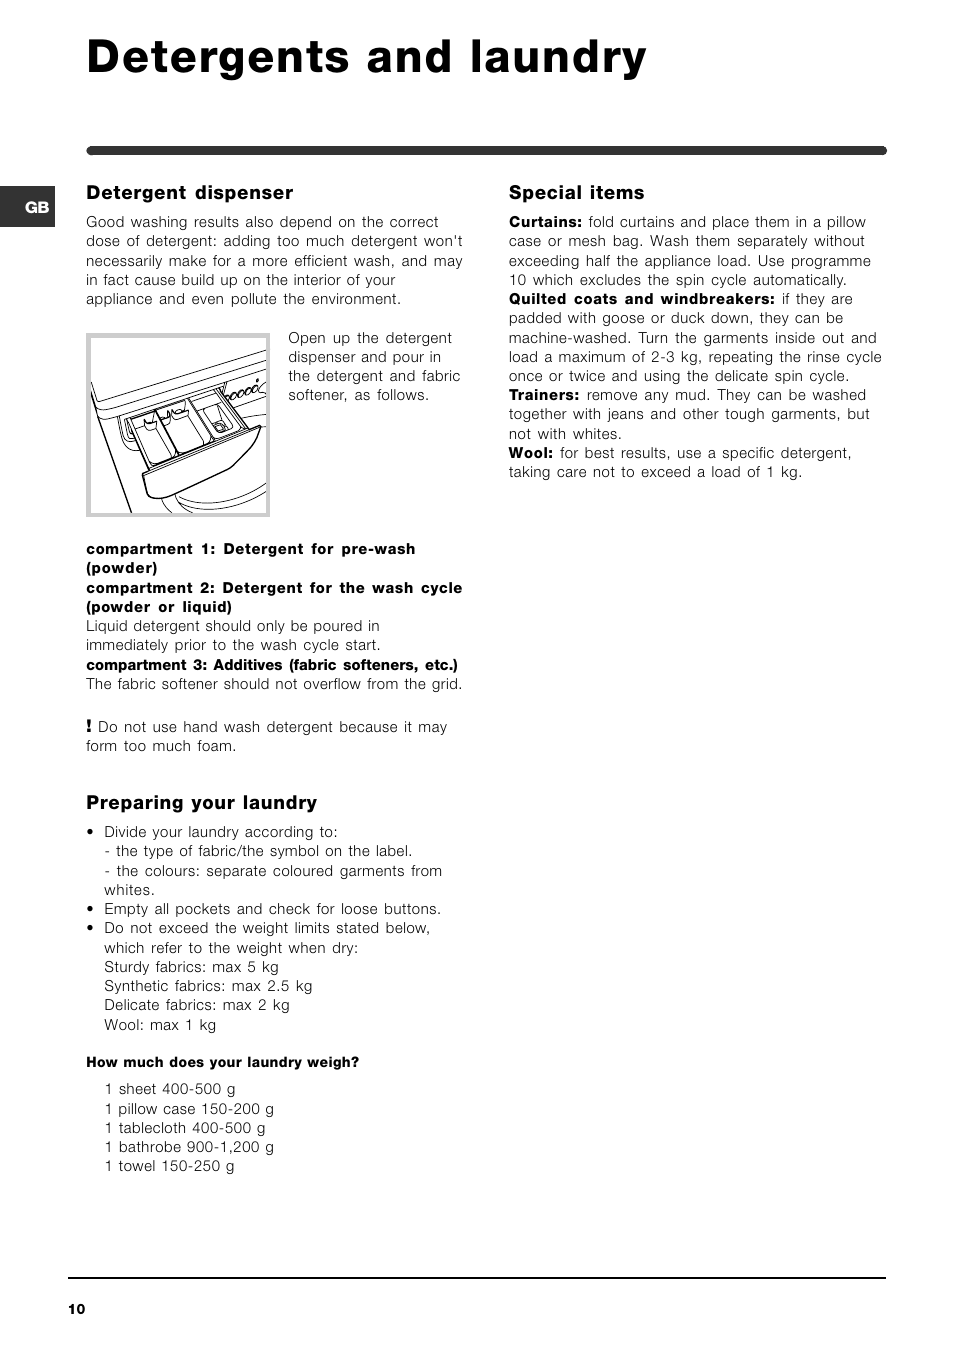 Indesit washer/dryer wia 101 instruction manual download free.